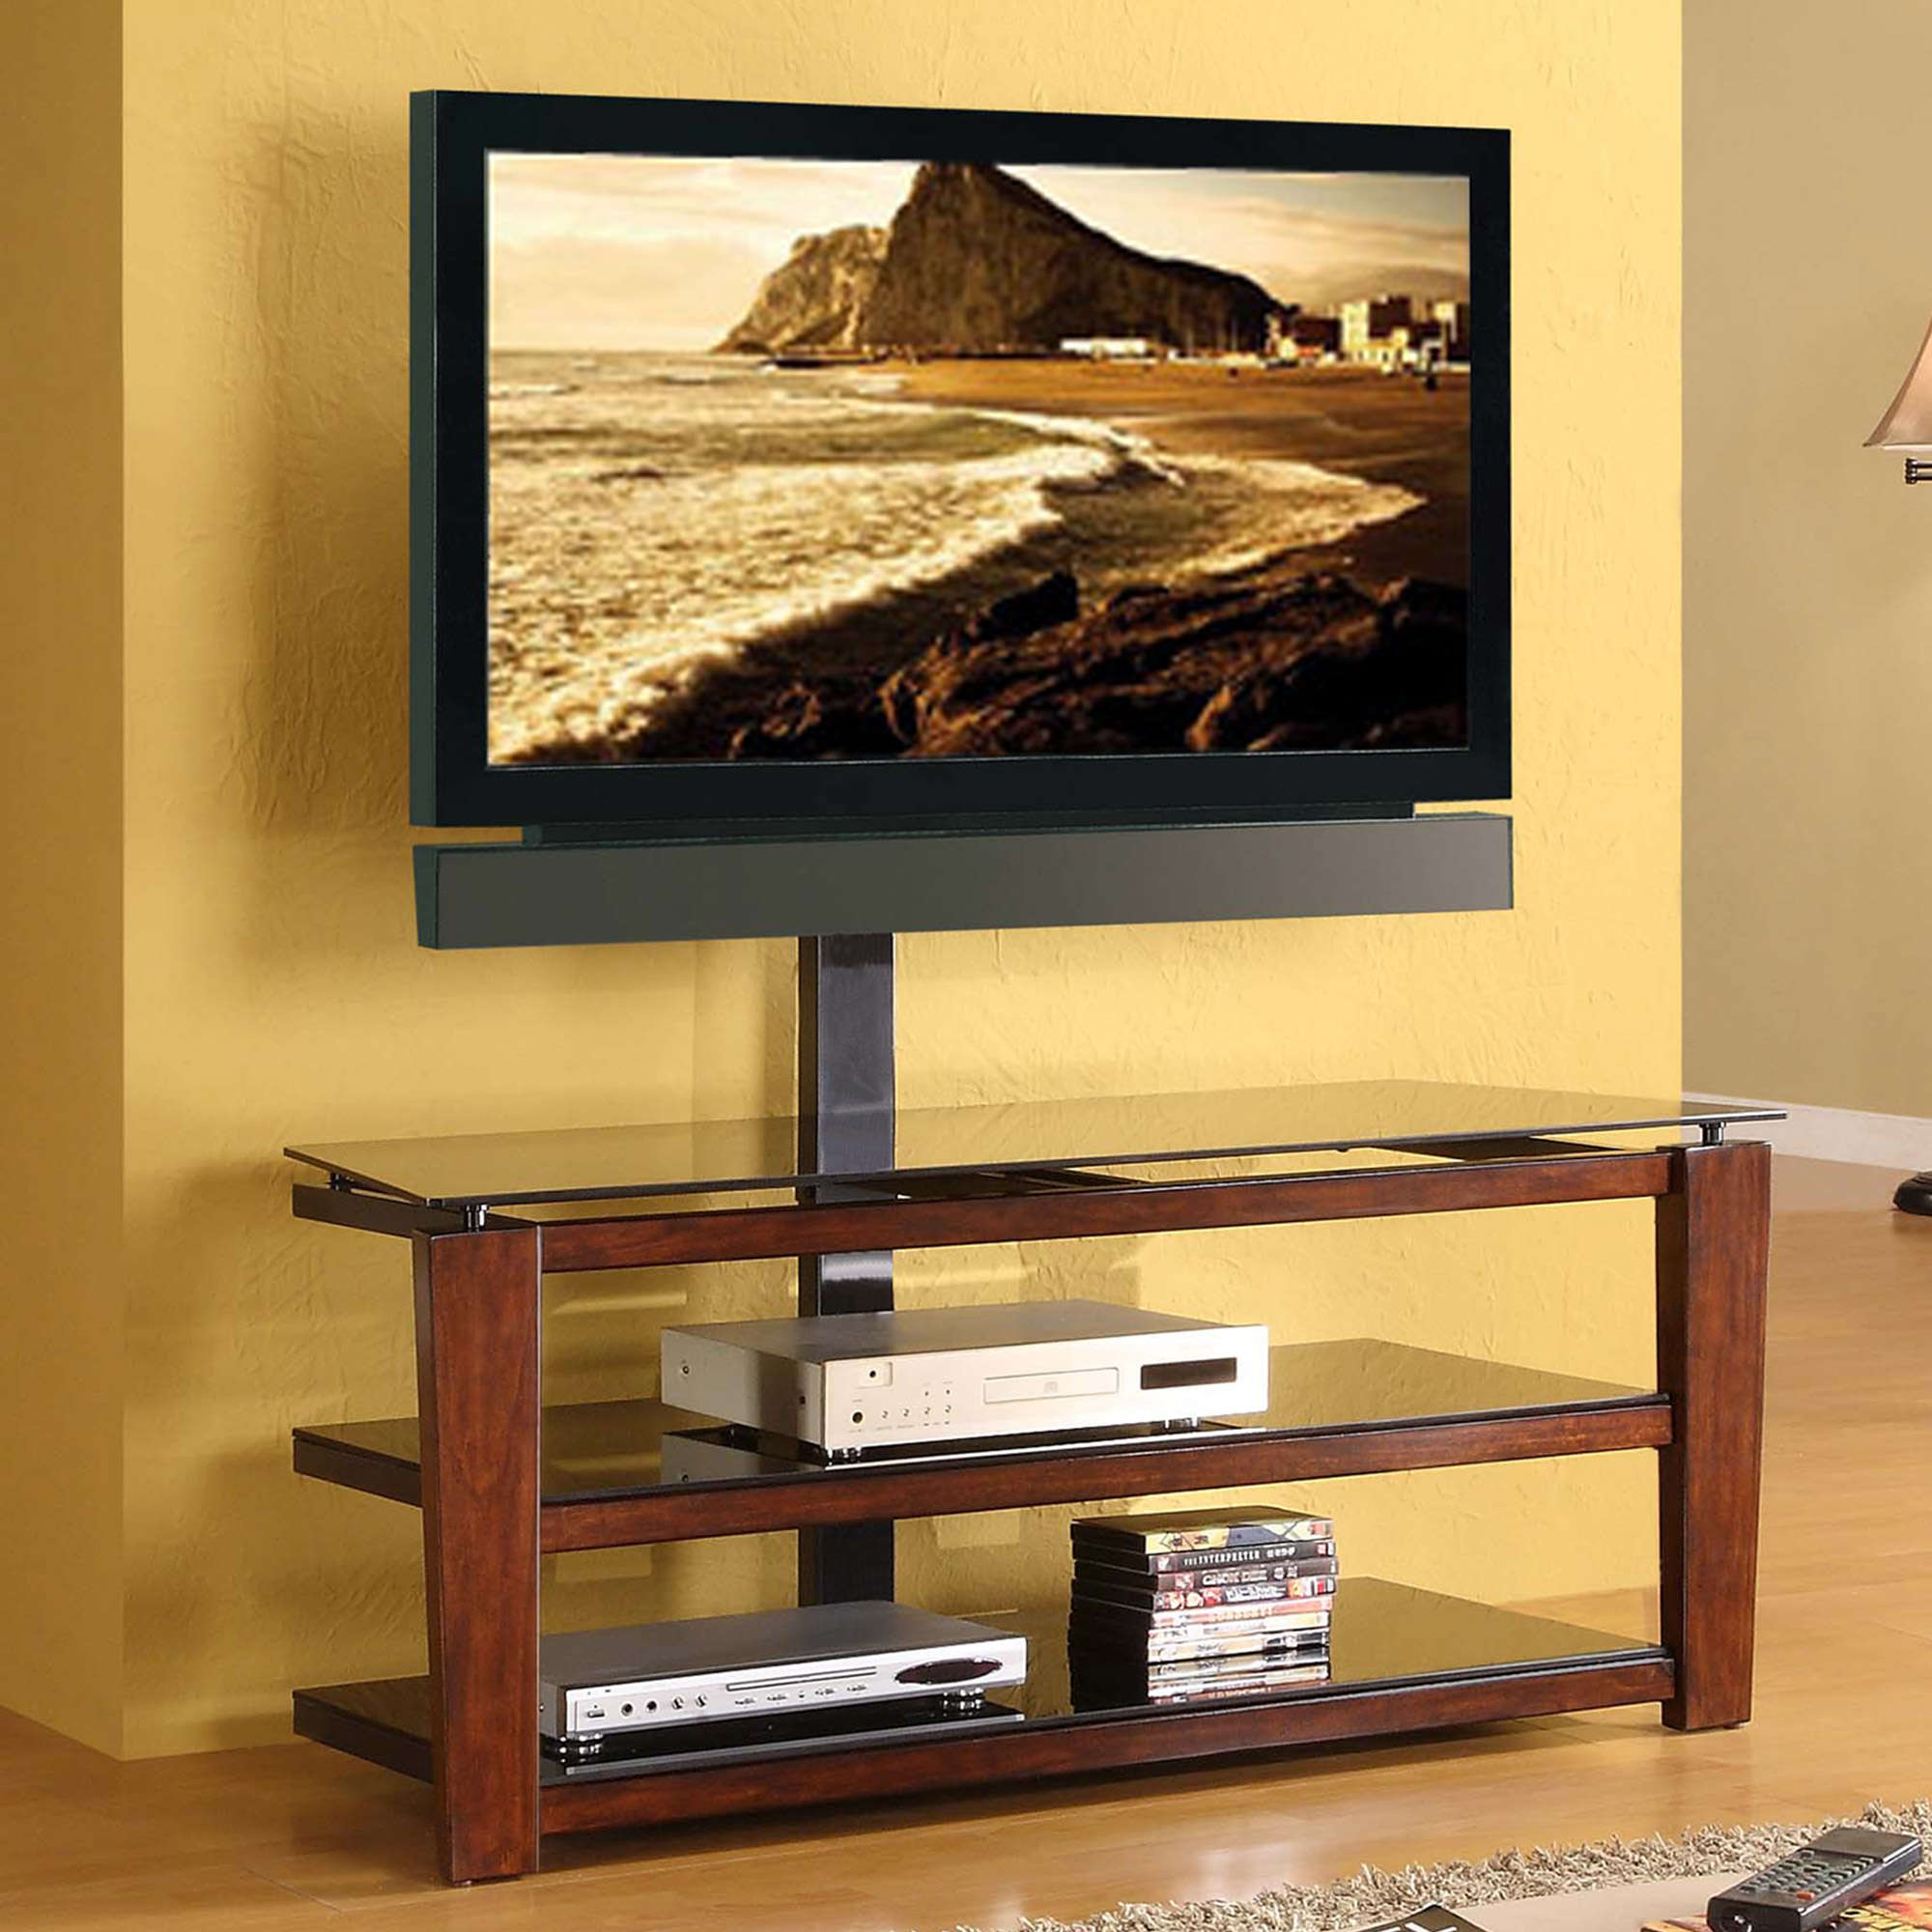 "Whalen Swivel 3-in-1 TV Stand for TVs up to 60"", Brown Cherry Finish"